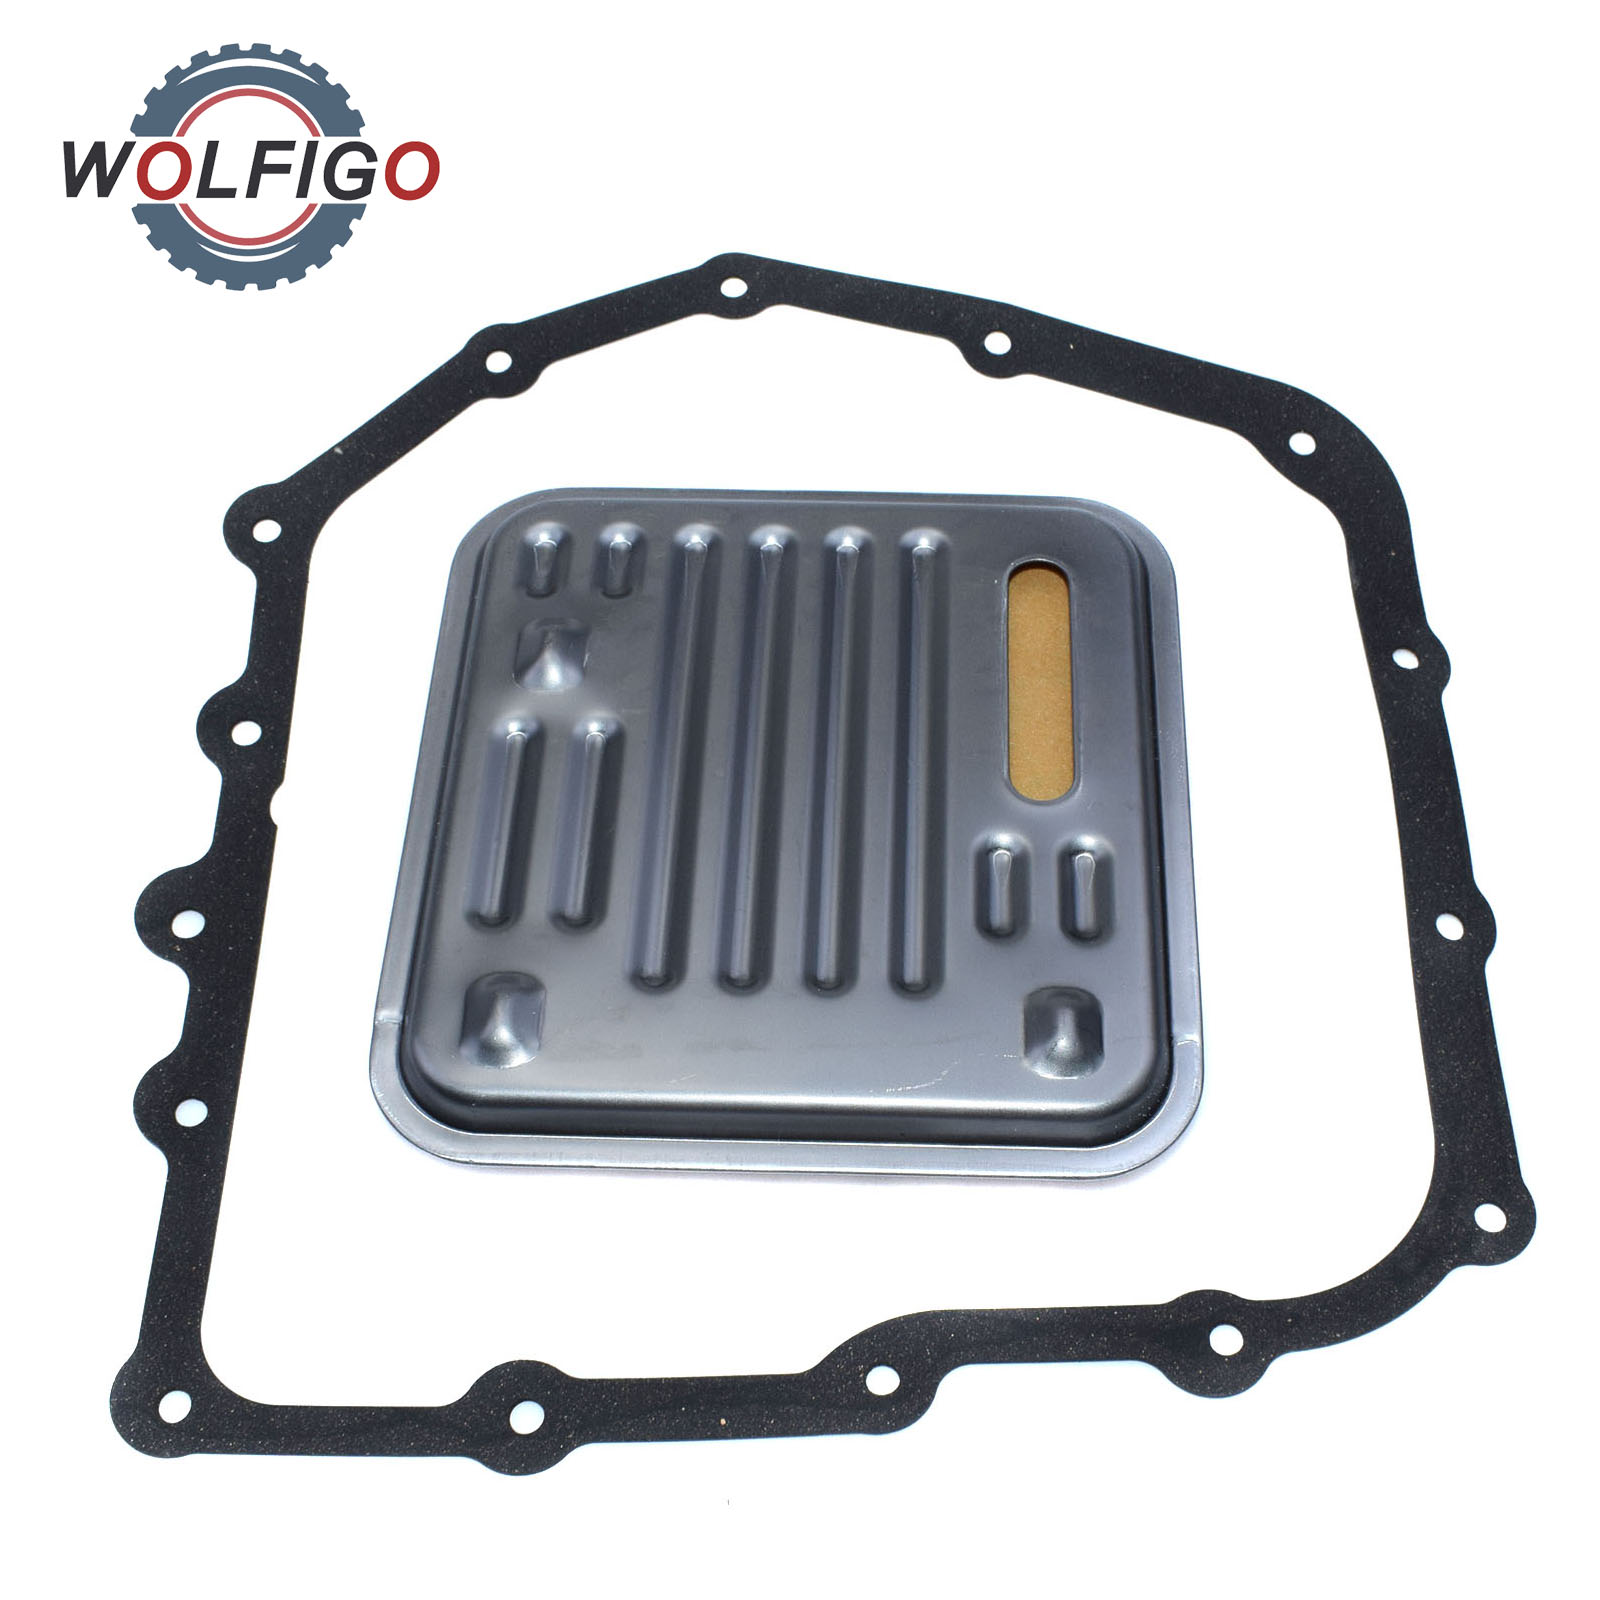 Chrysler A604 41TE Automatic Gearbox Pump Gasket